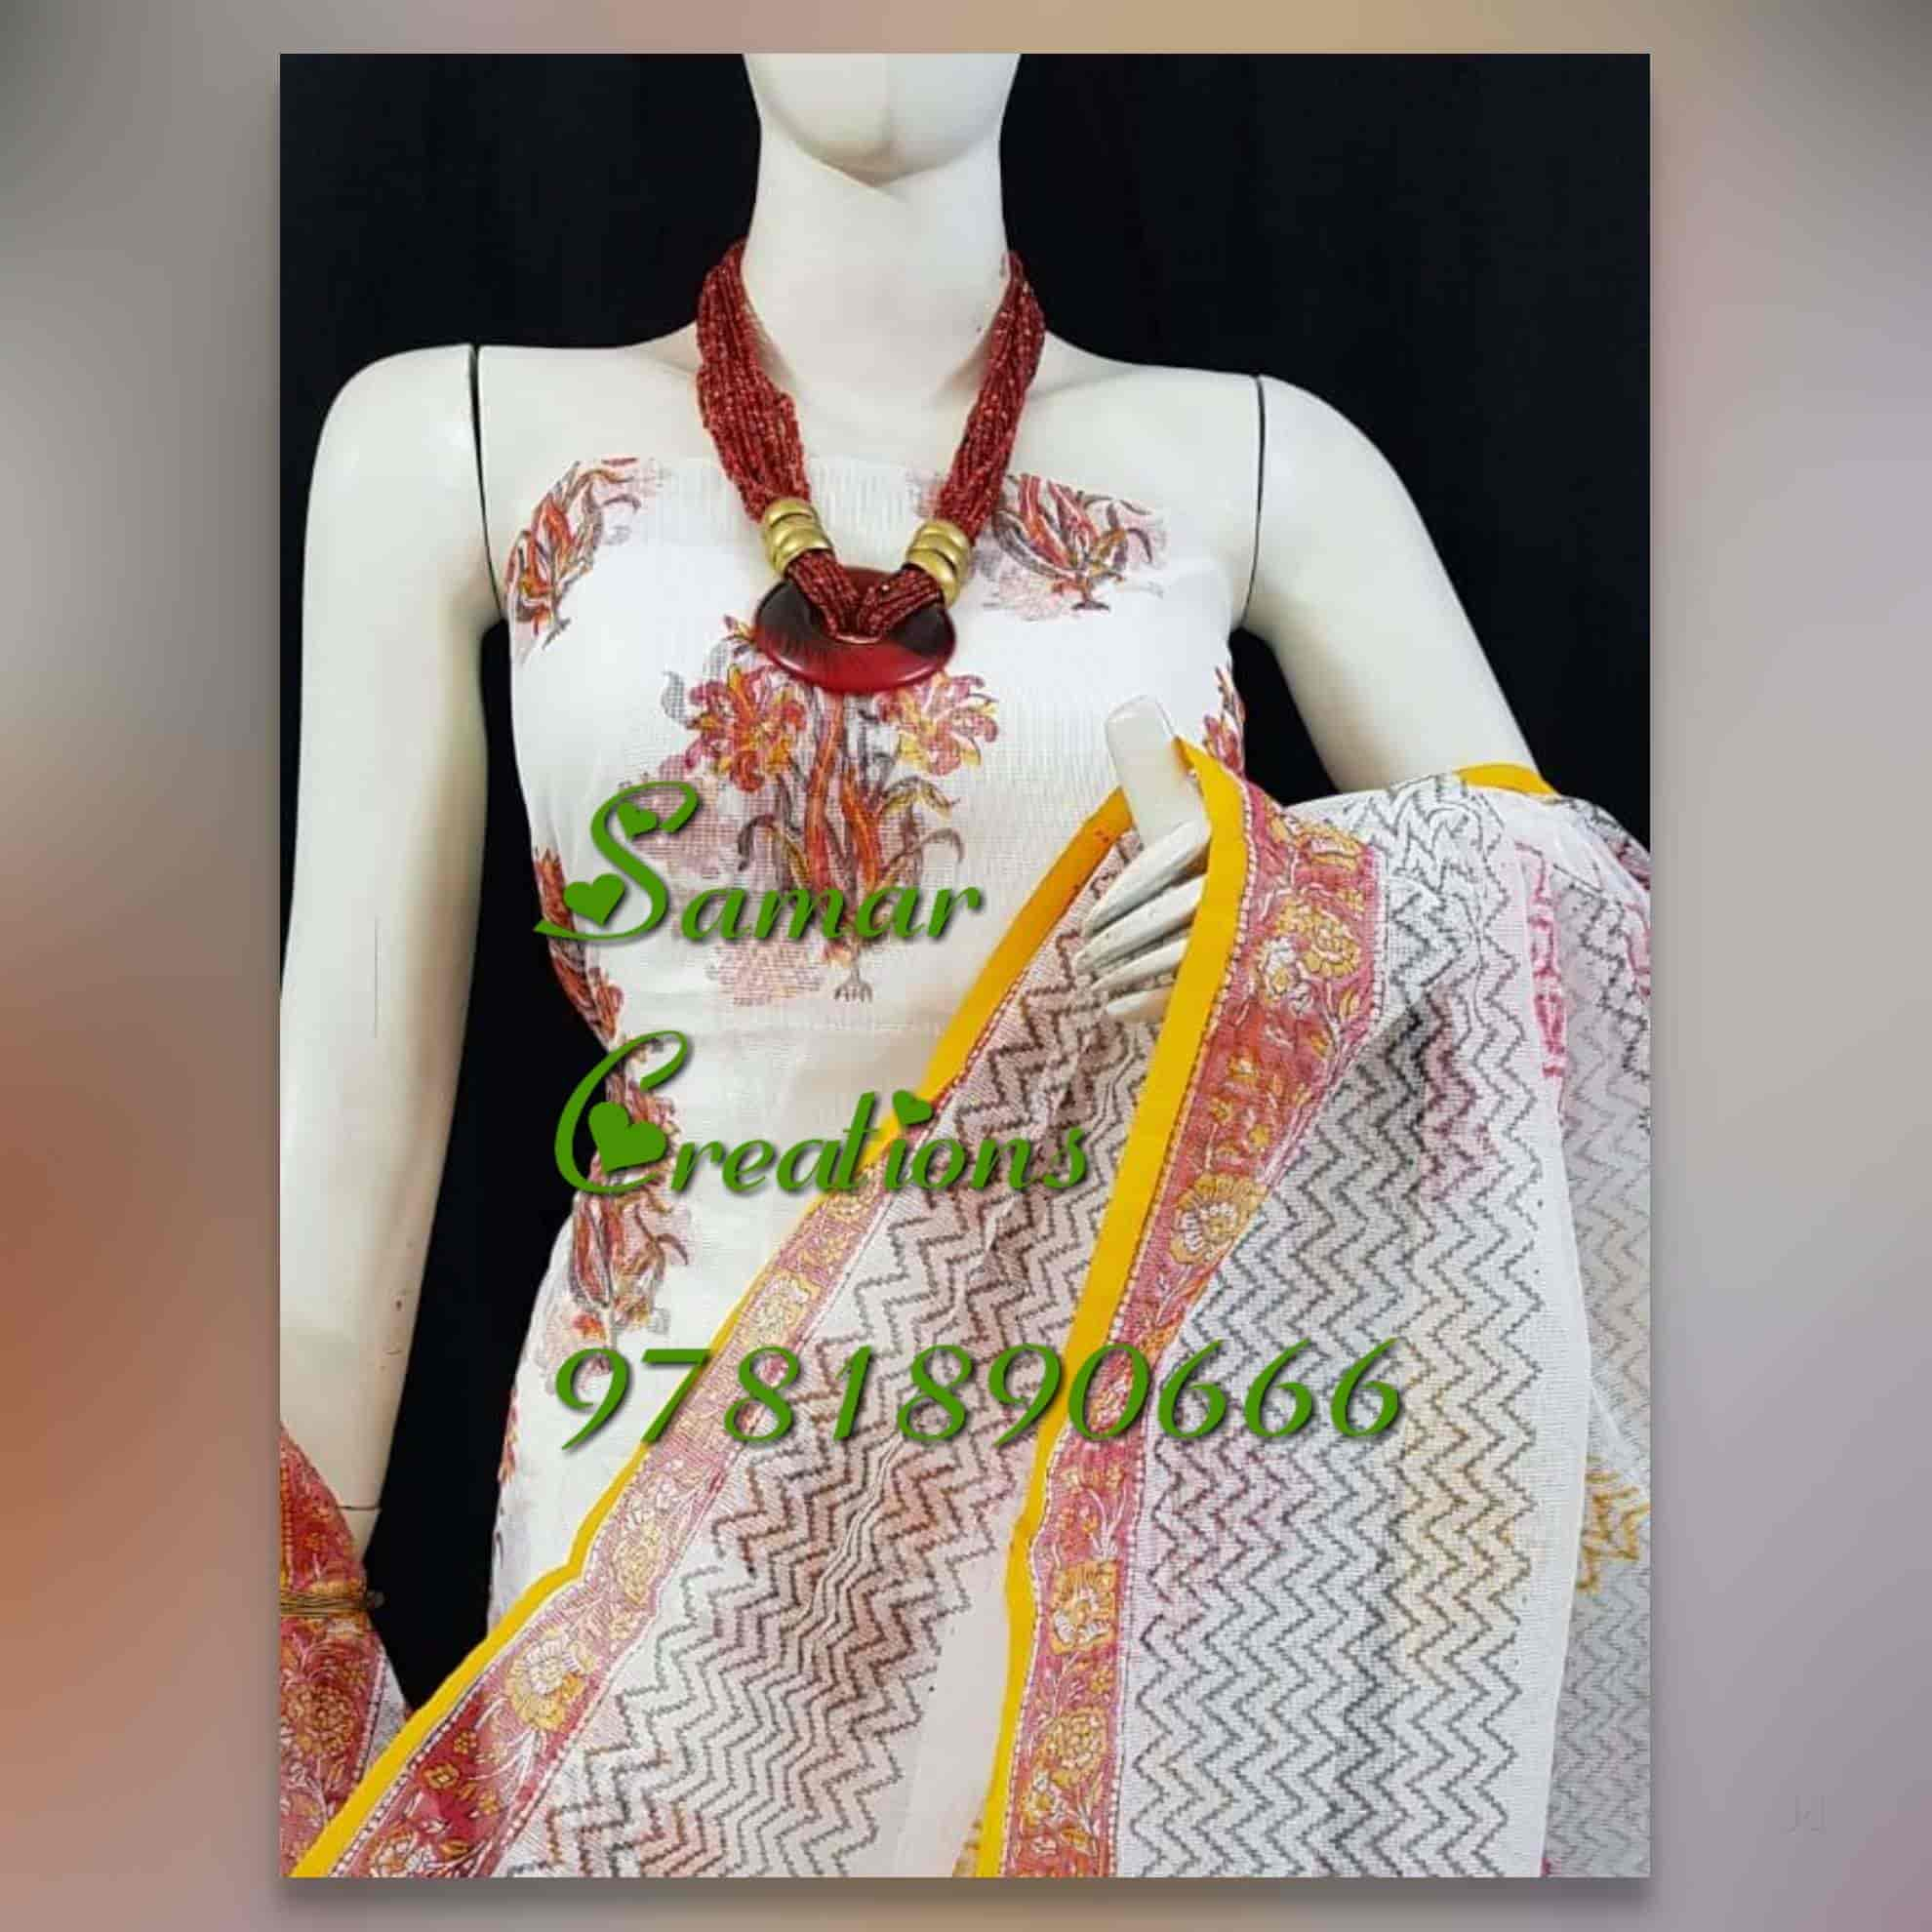 Samar Creations Designer Boutique Sector 37 Boutiques In Chandigarh Justdial